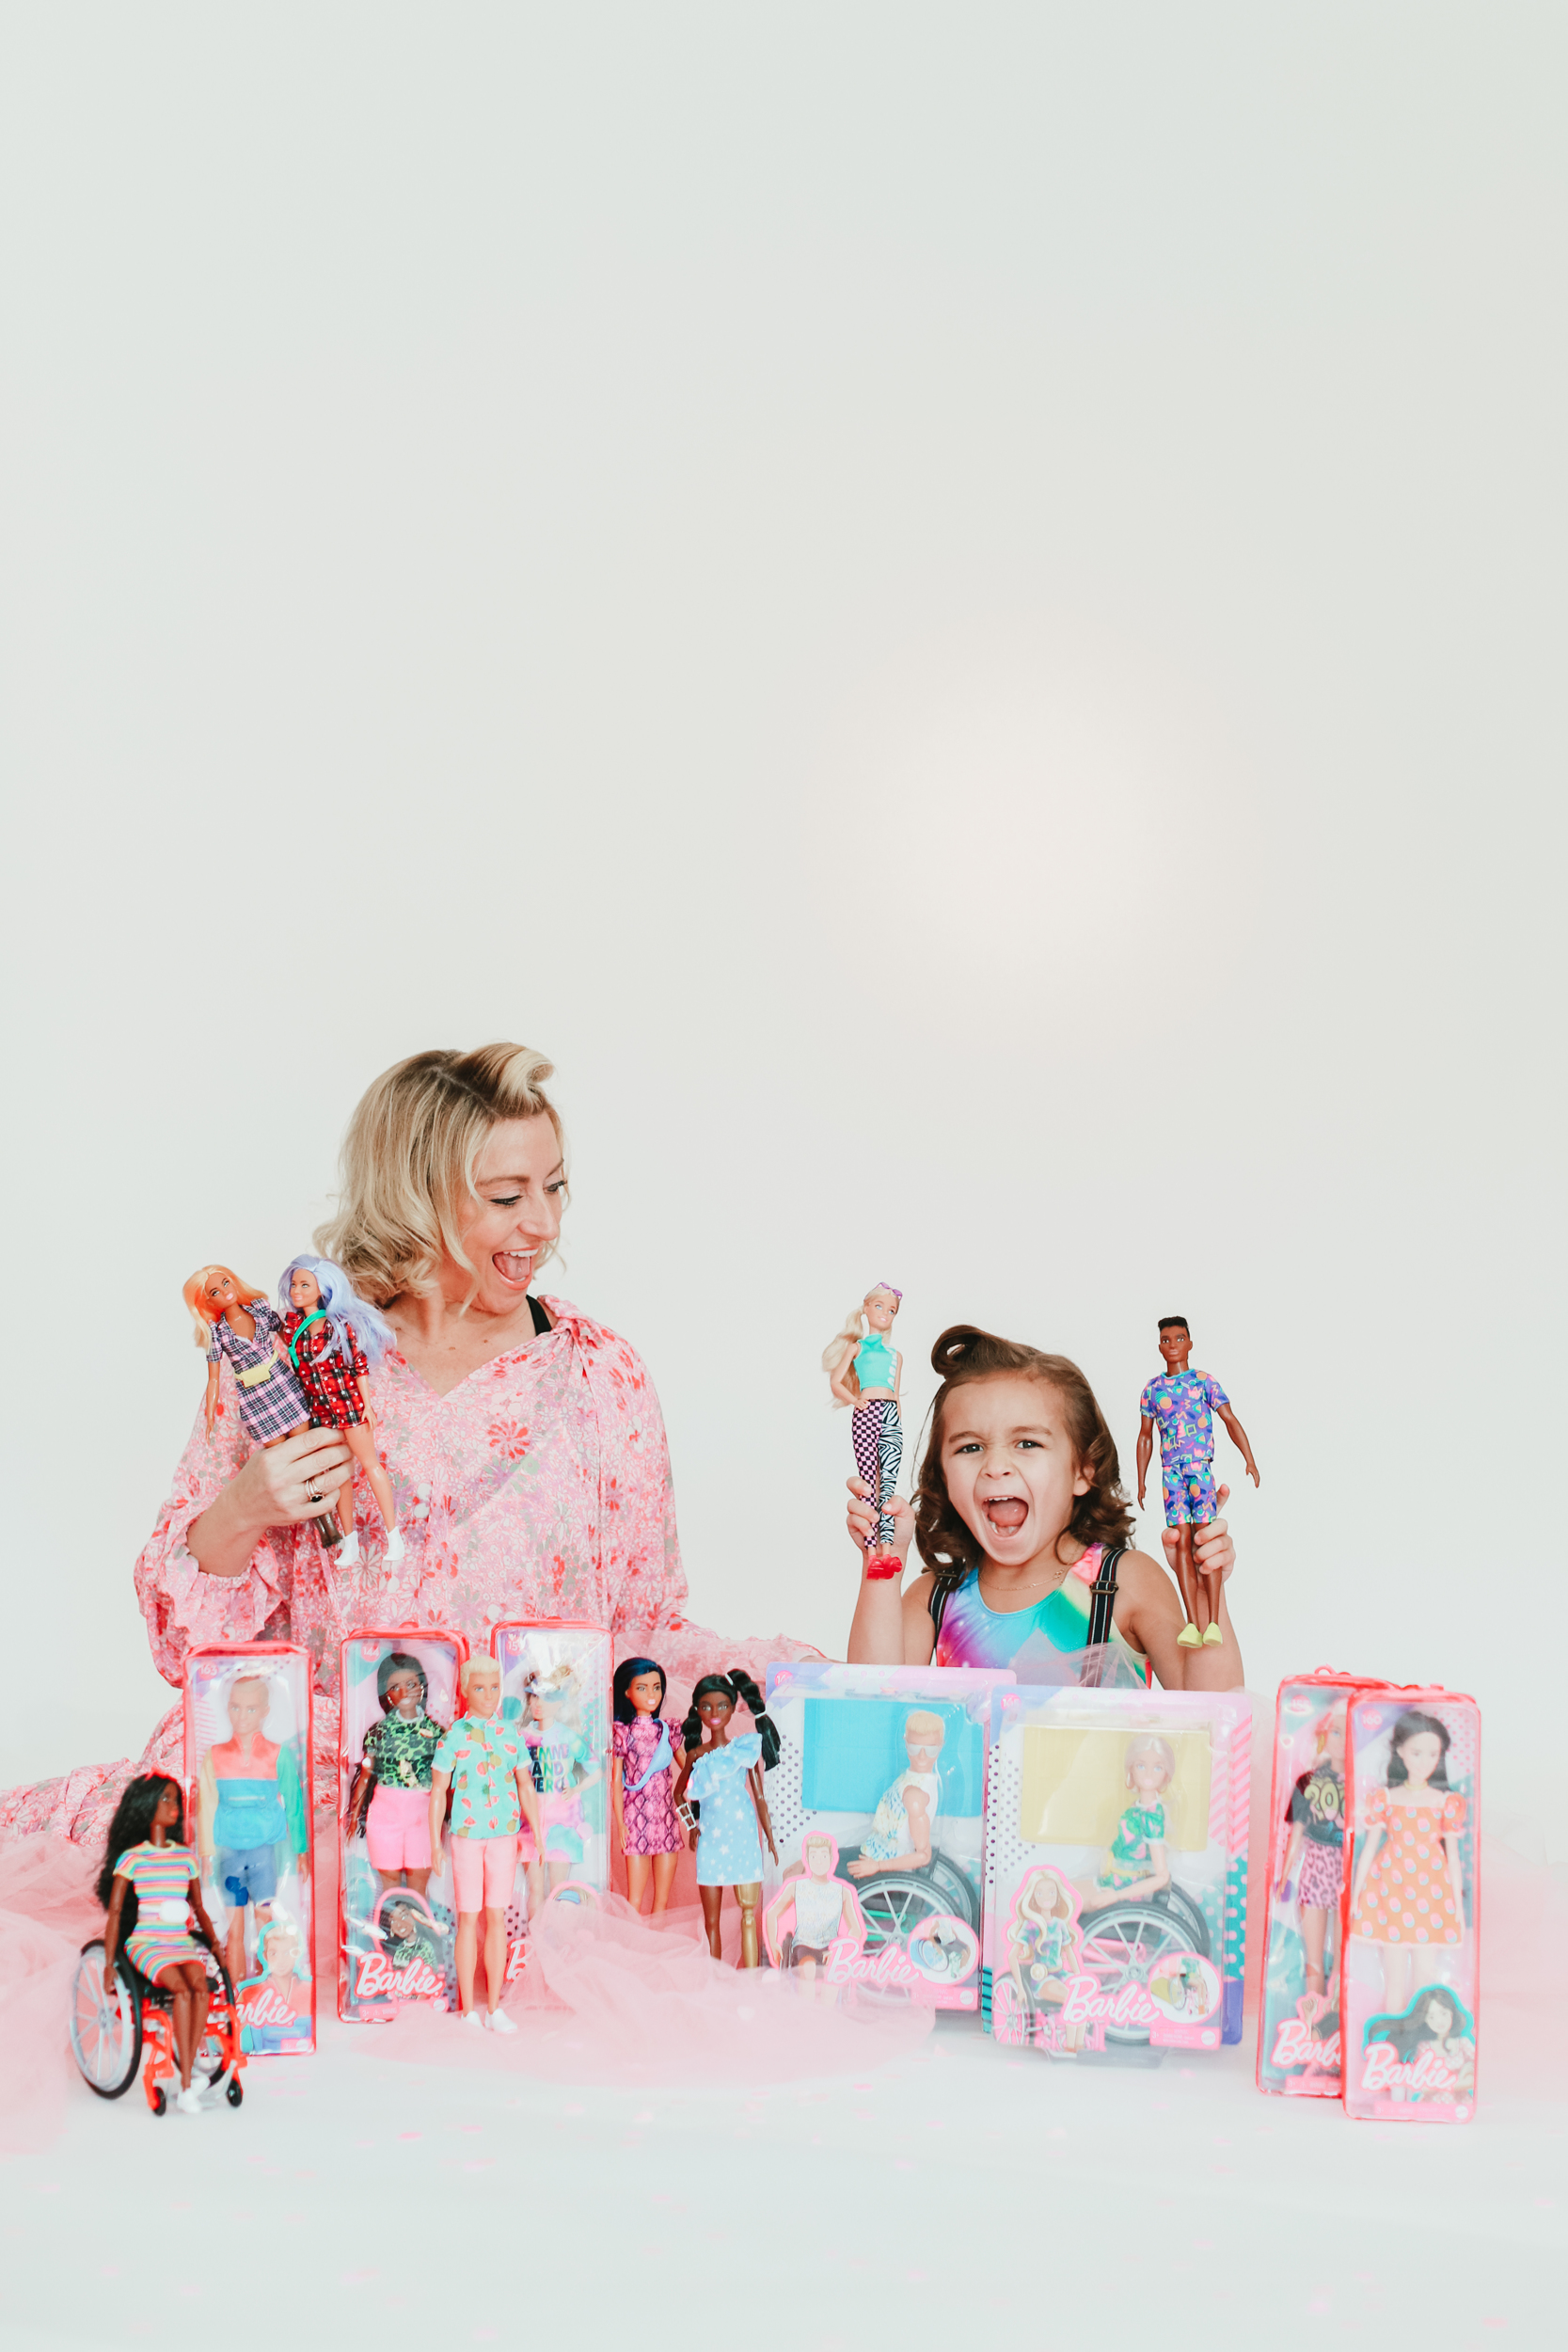 mom and kid playing with barbie dolls